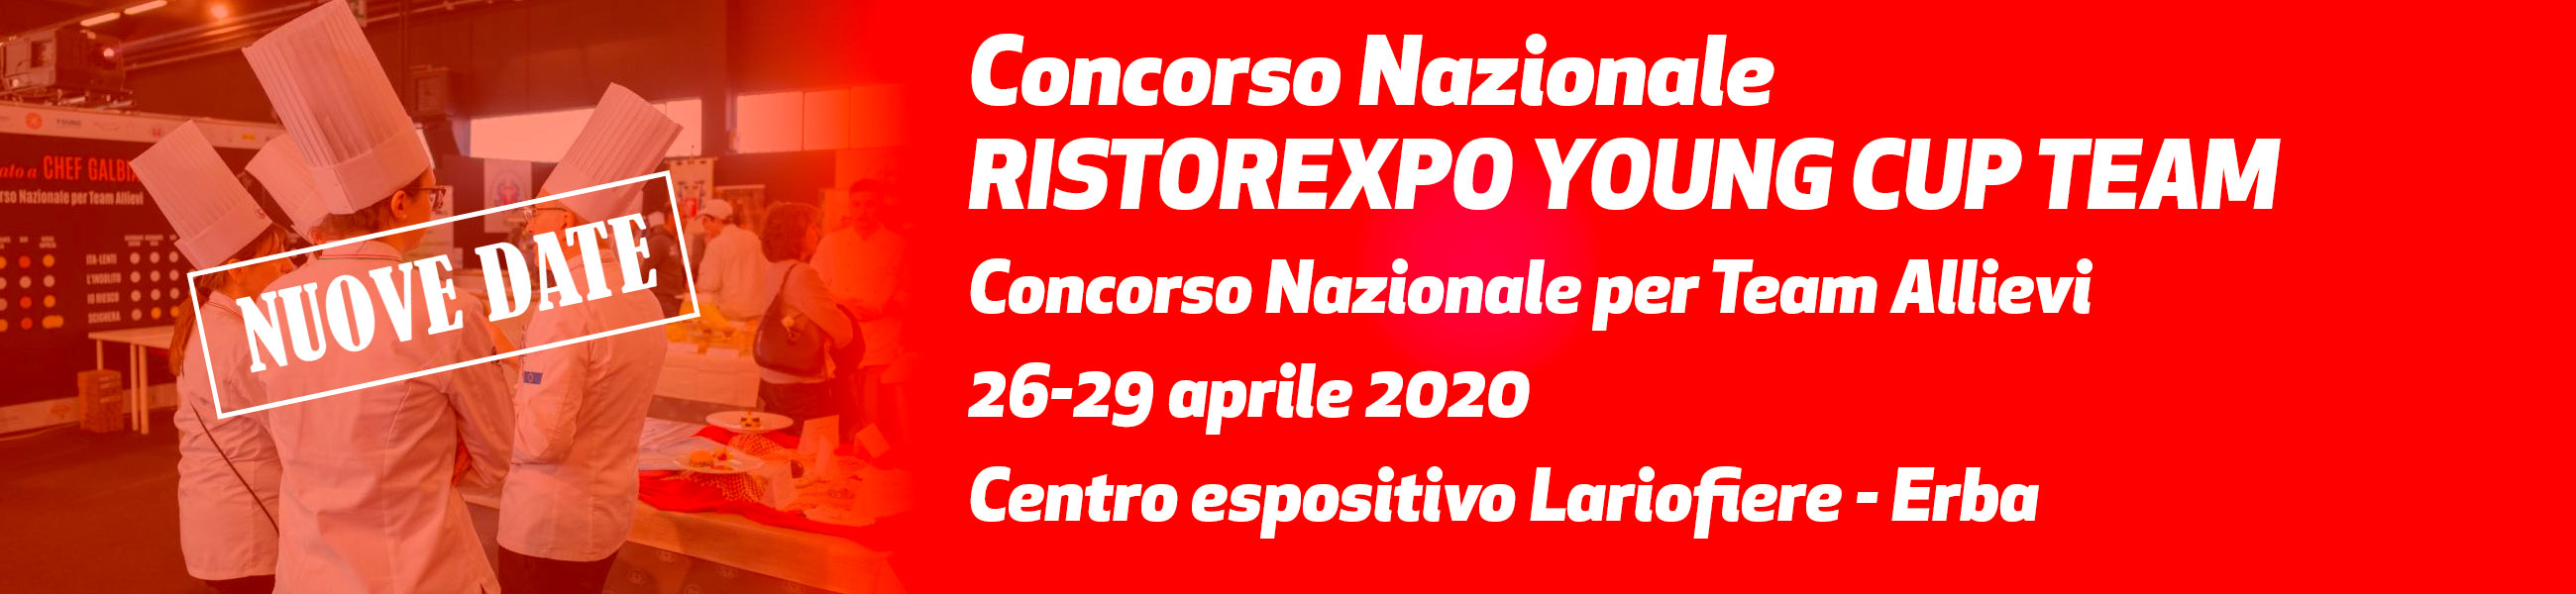 26-29 aprile 2020 - Ristorexpo Young Cup Team